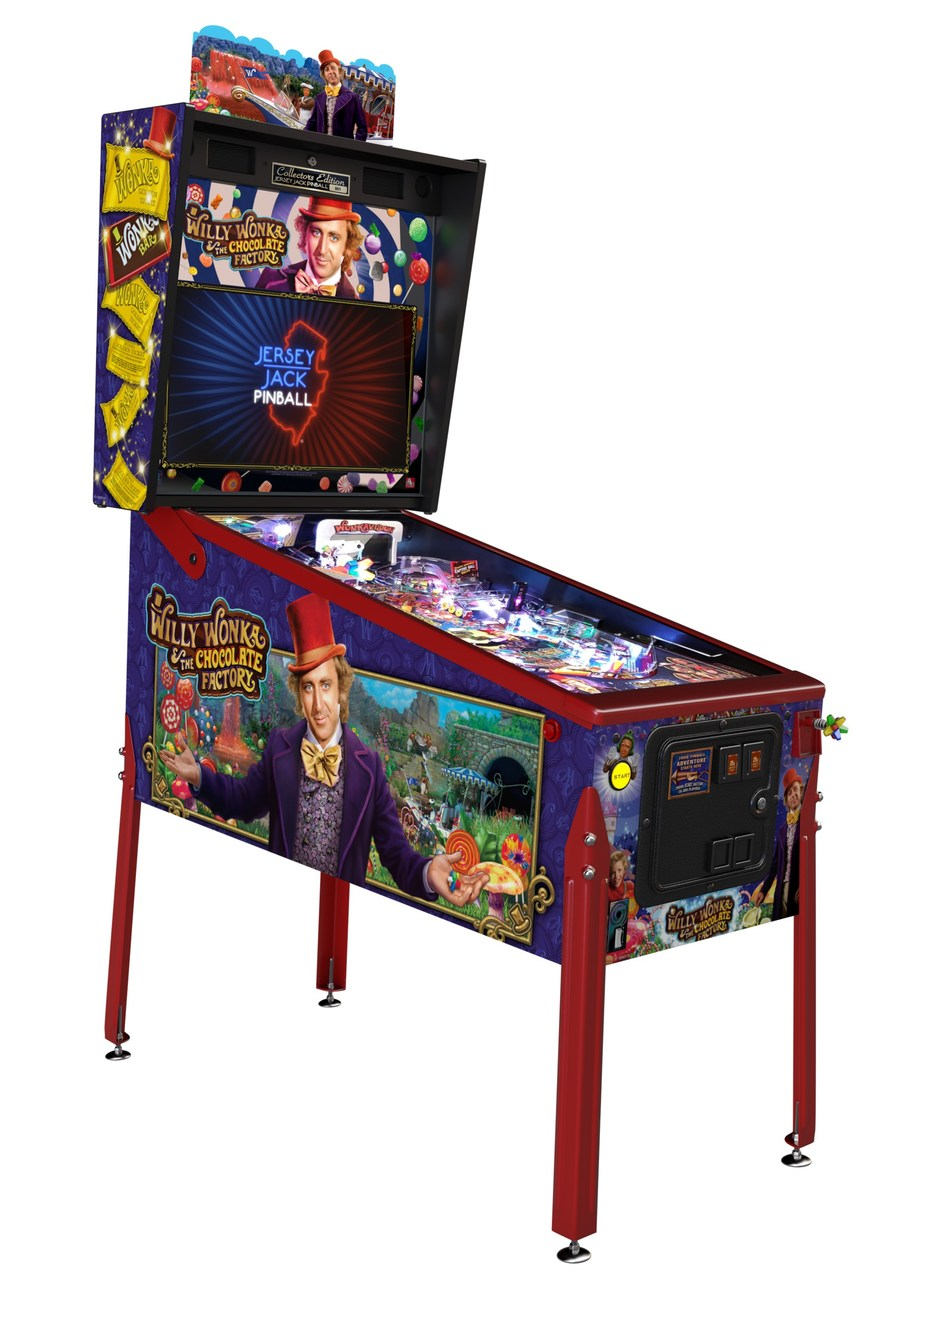 Willy Wonka and the Chocolate Factory™ pinball machine - Collector's Edition model.